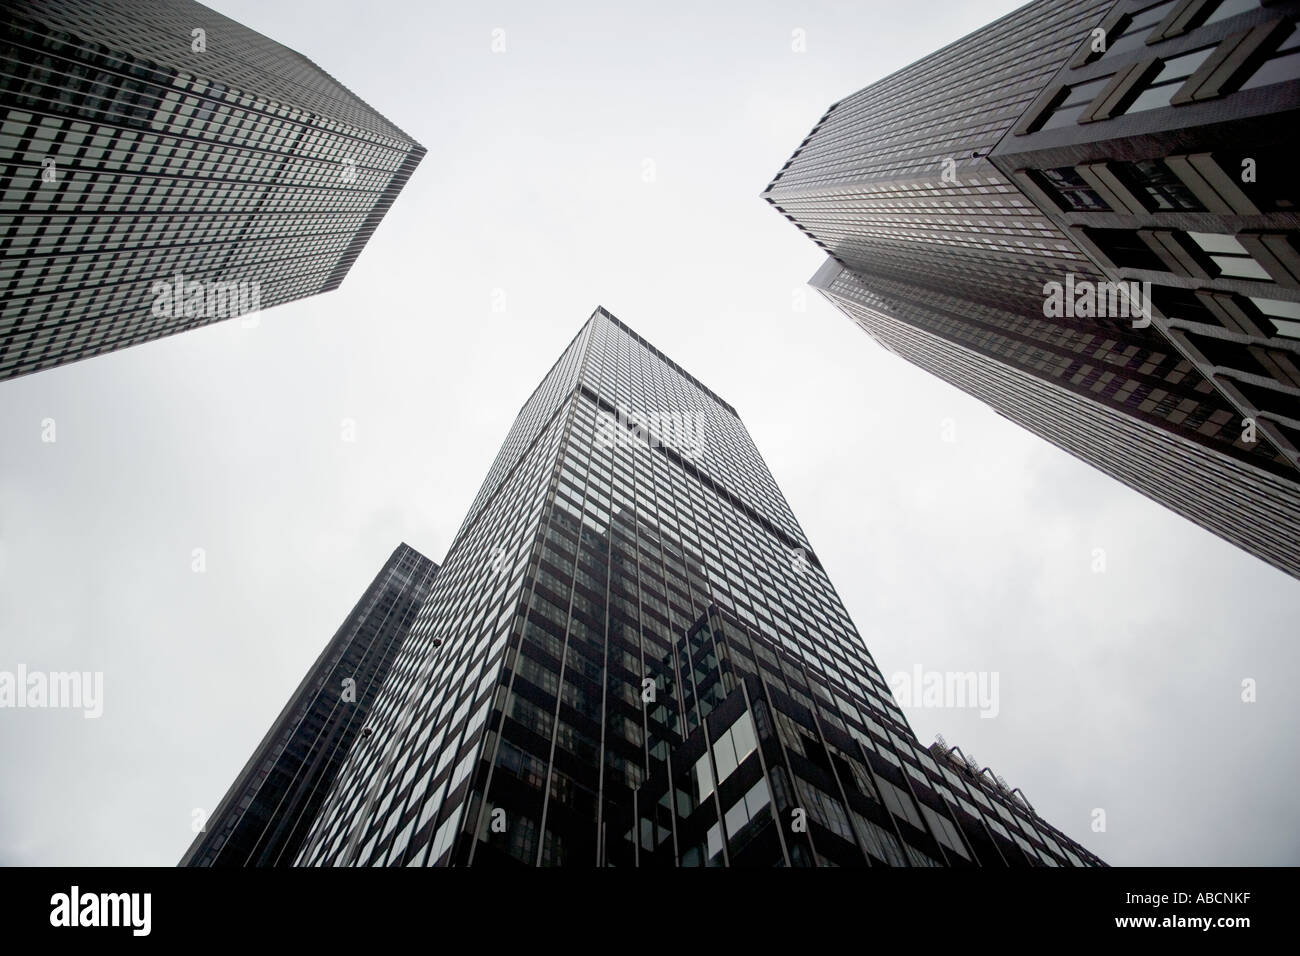 Looking up at new york skyscrapers - Stock Image